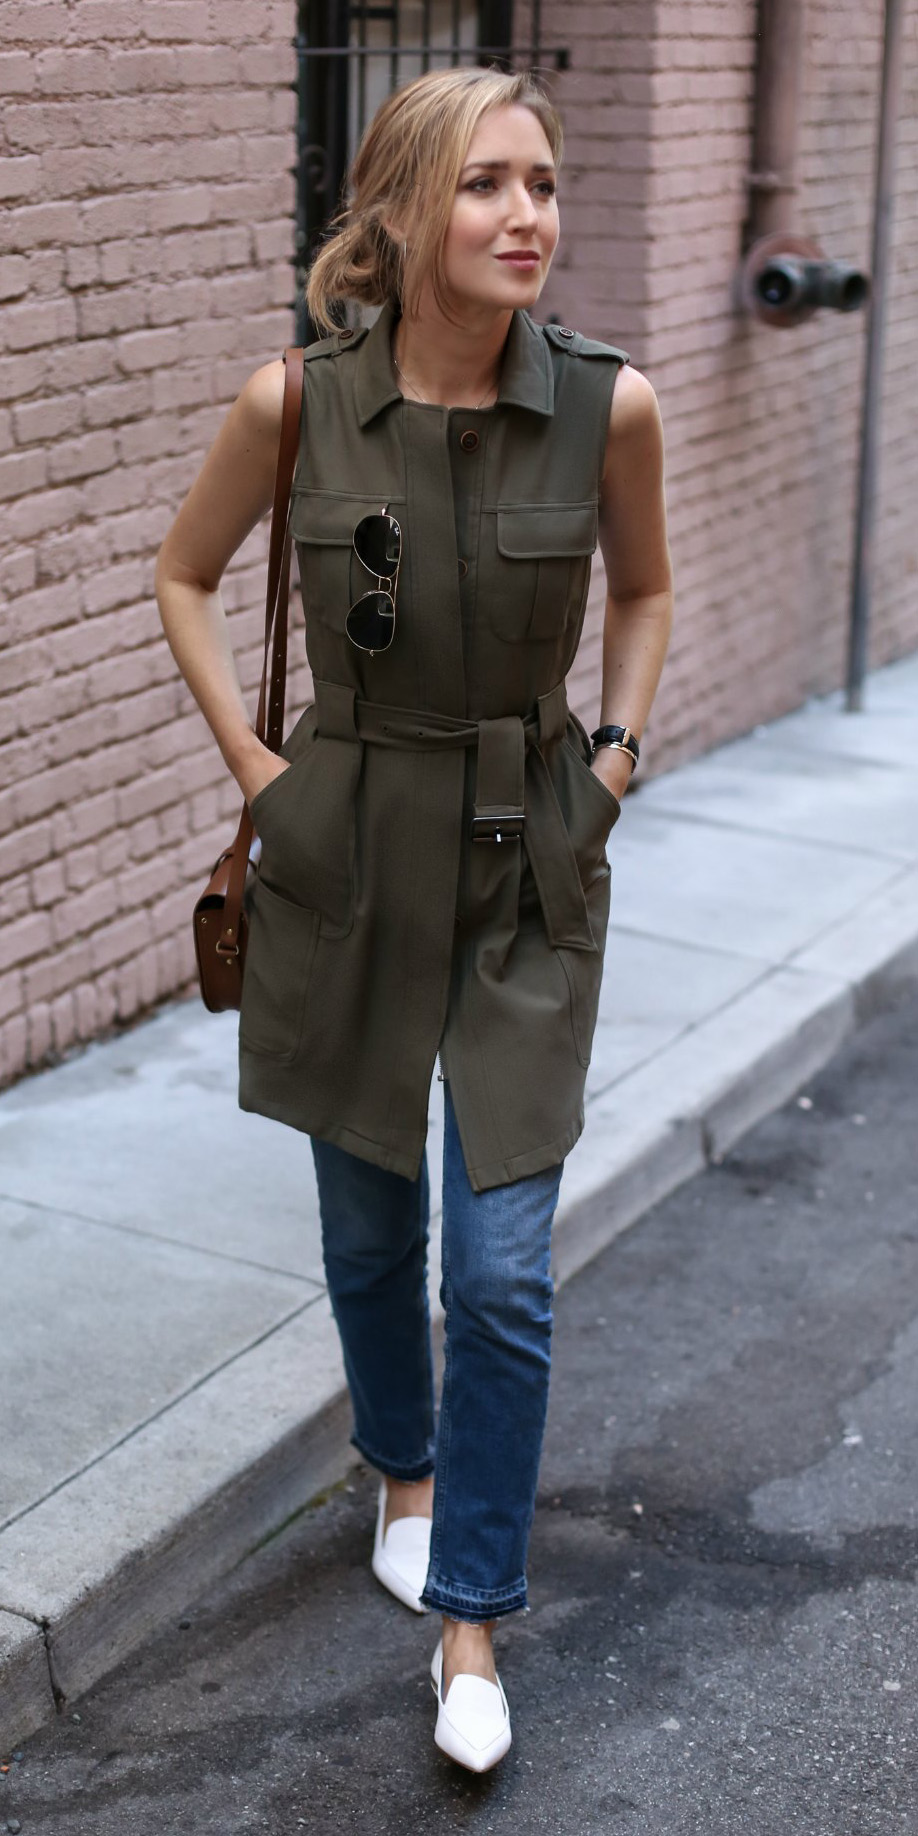 blue-med-skinny-jeans-green-olive-vest-utility-cargo-blonde-pony-brown-bag-white-shoe-loafers-spring-summer-lunch.jpg